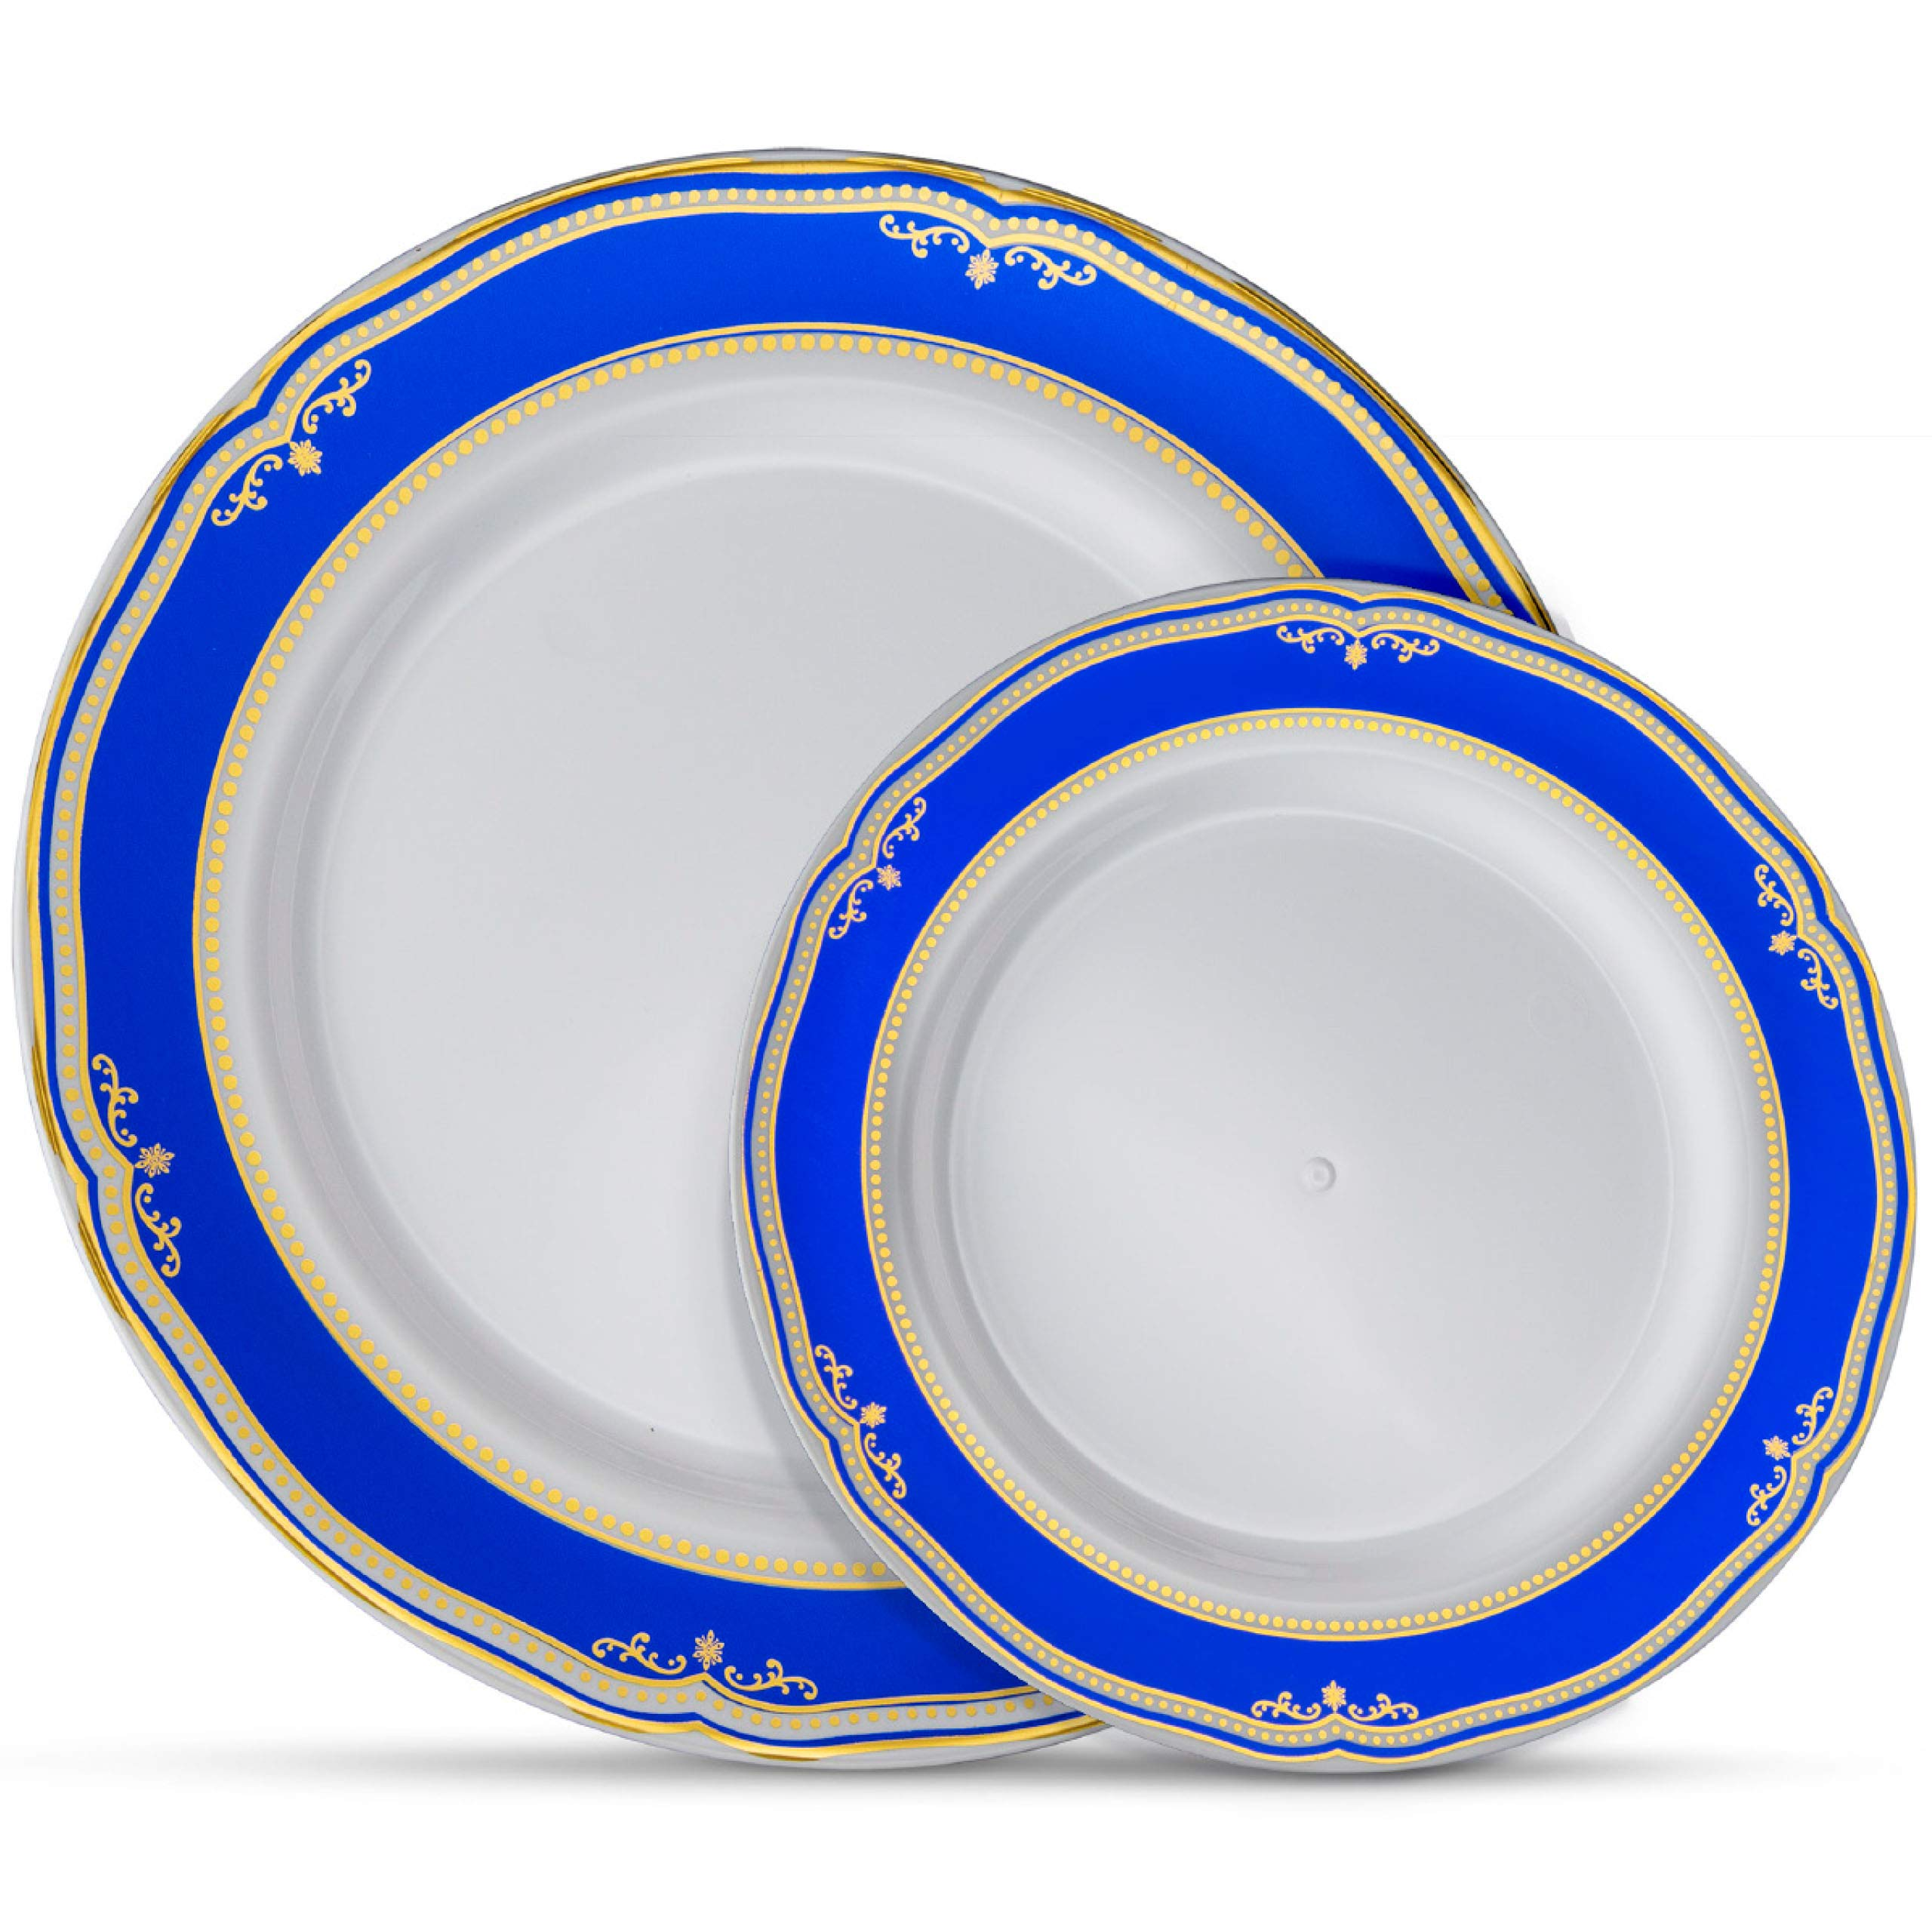 Laura Stein Designer Dinnerware Set | 64 Disposable Plastic Party Plates | White Wedding Plate with Blue Rim & Gold Accents | Includes 32 x 10.75'' Dinner Plates + 32 x 7.5'' Salad Plates | Cobalt Blue by Laura Stein